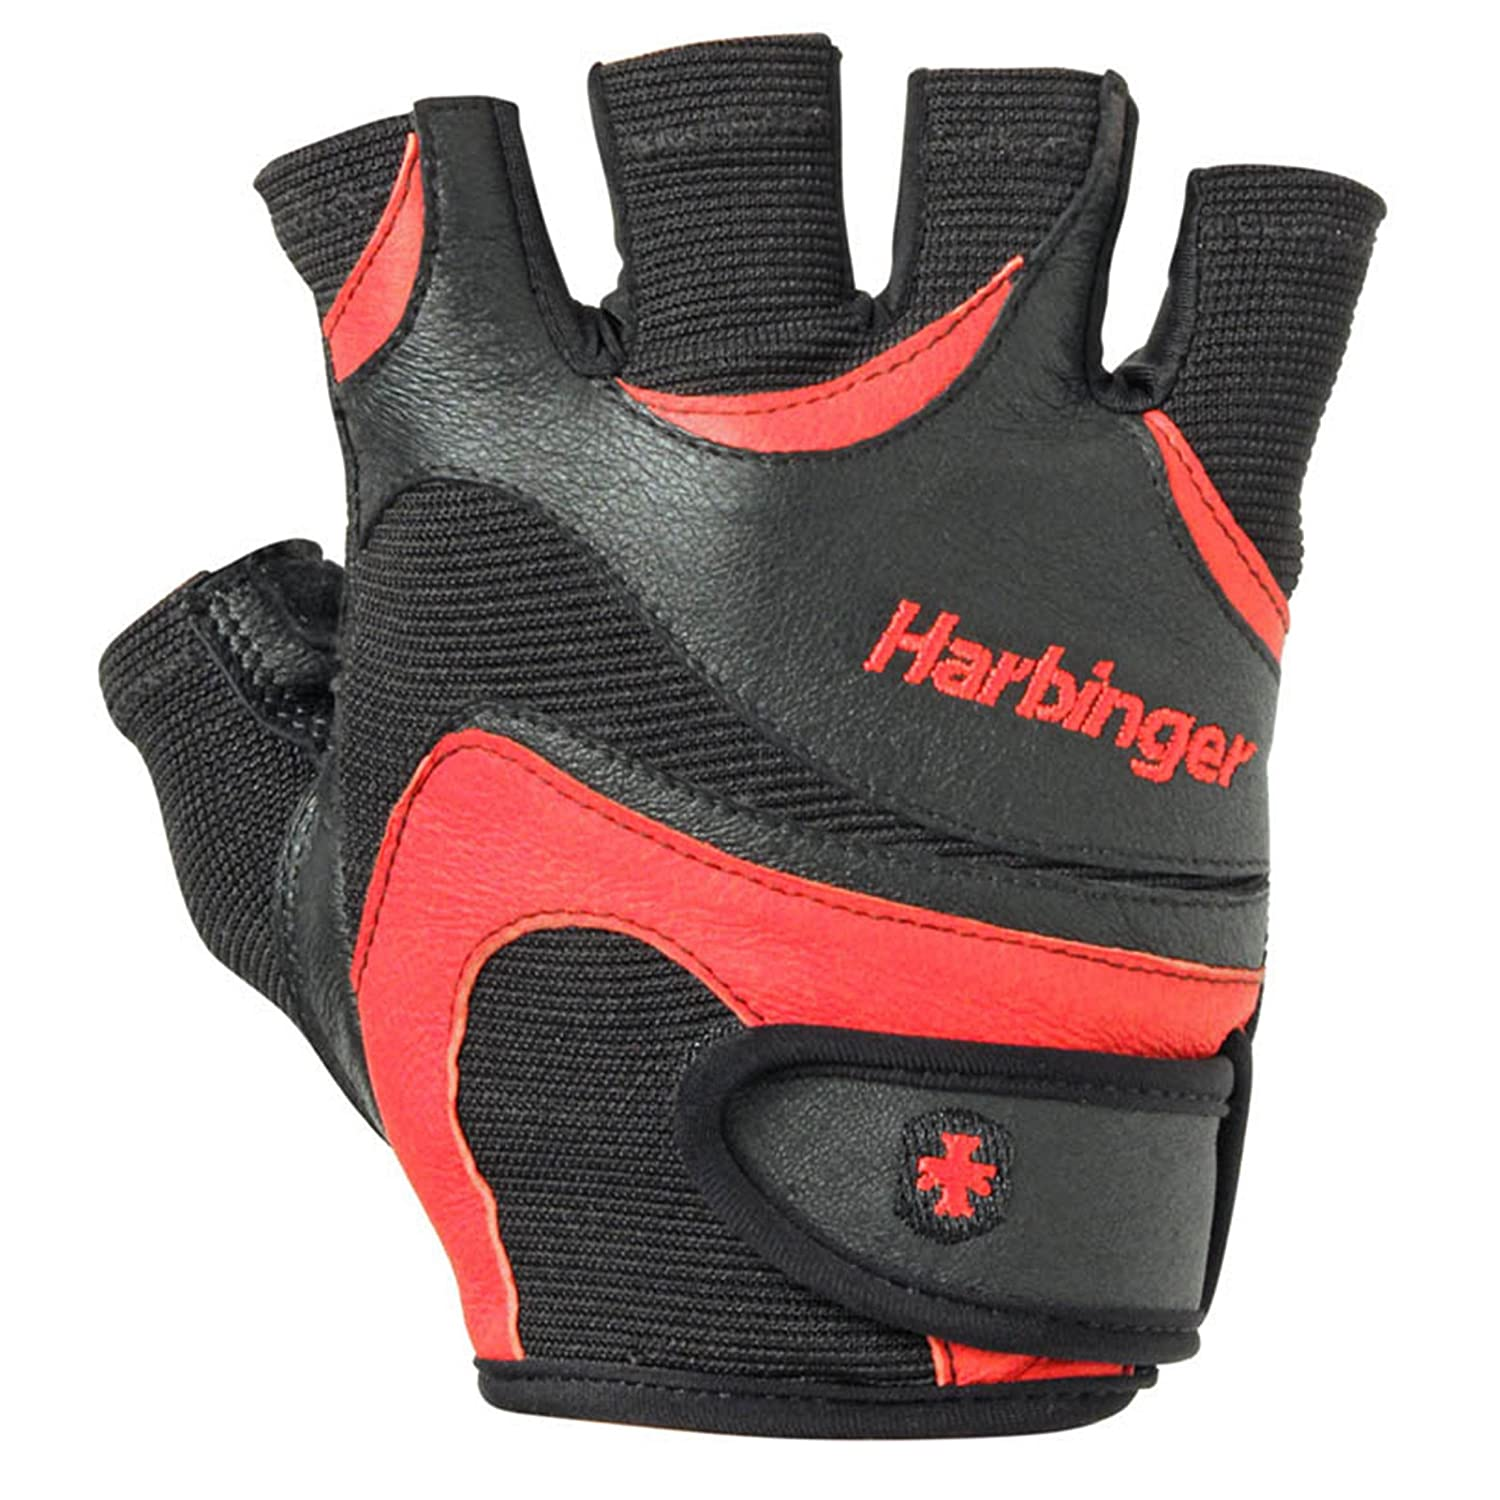 Mens leather gloves gq - Amazon Com Harbinger Men S Flexfit Weightlifting Gloves With Flexible Cushioned Leather Palm Pair Large Sports Outdoors